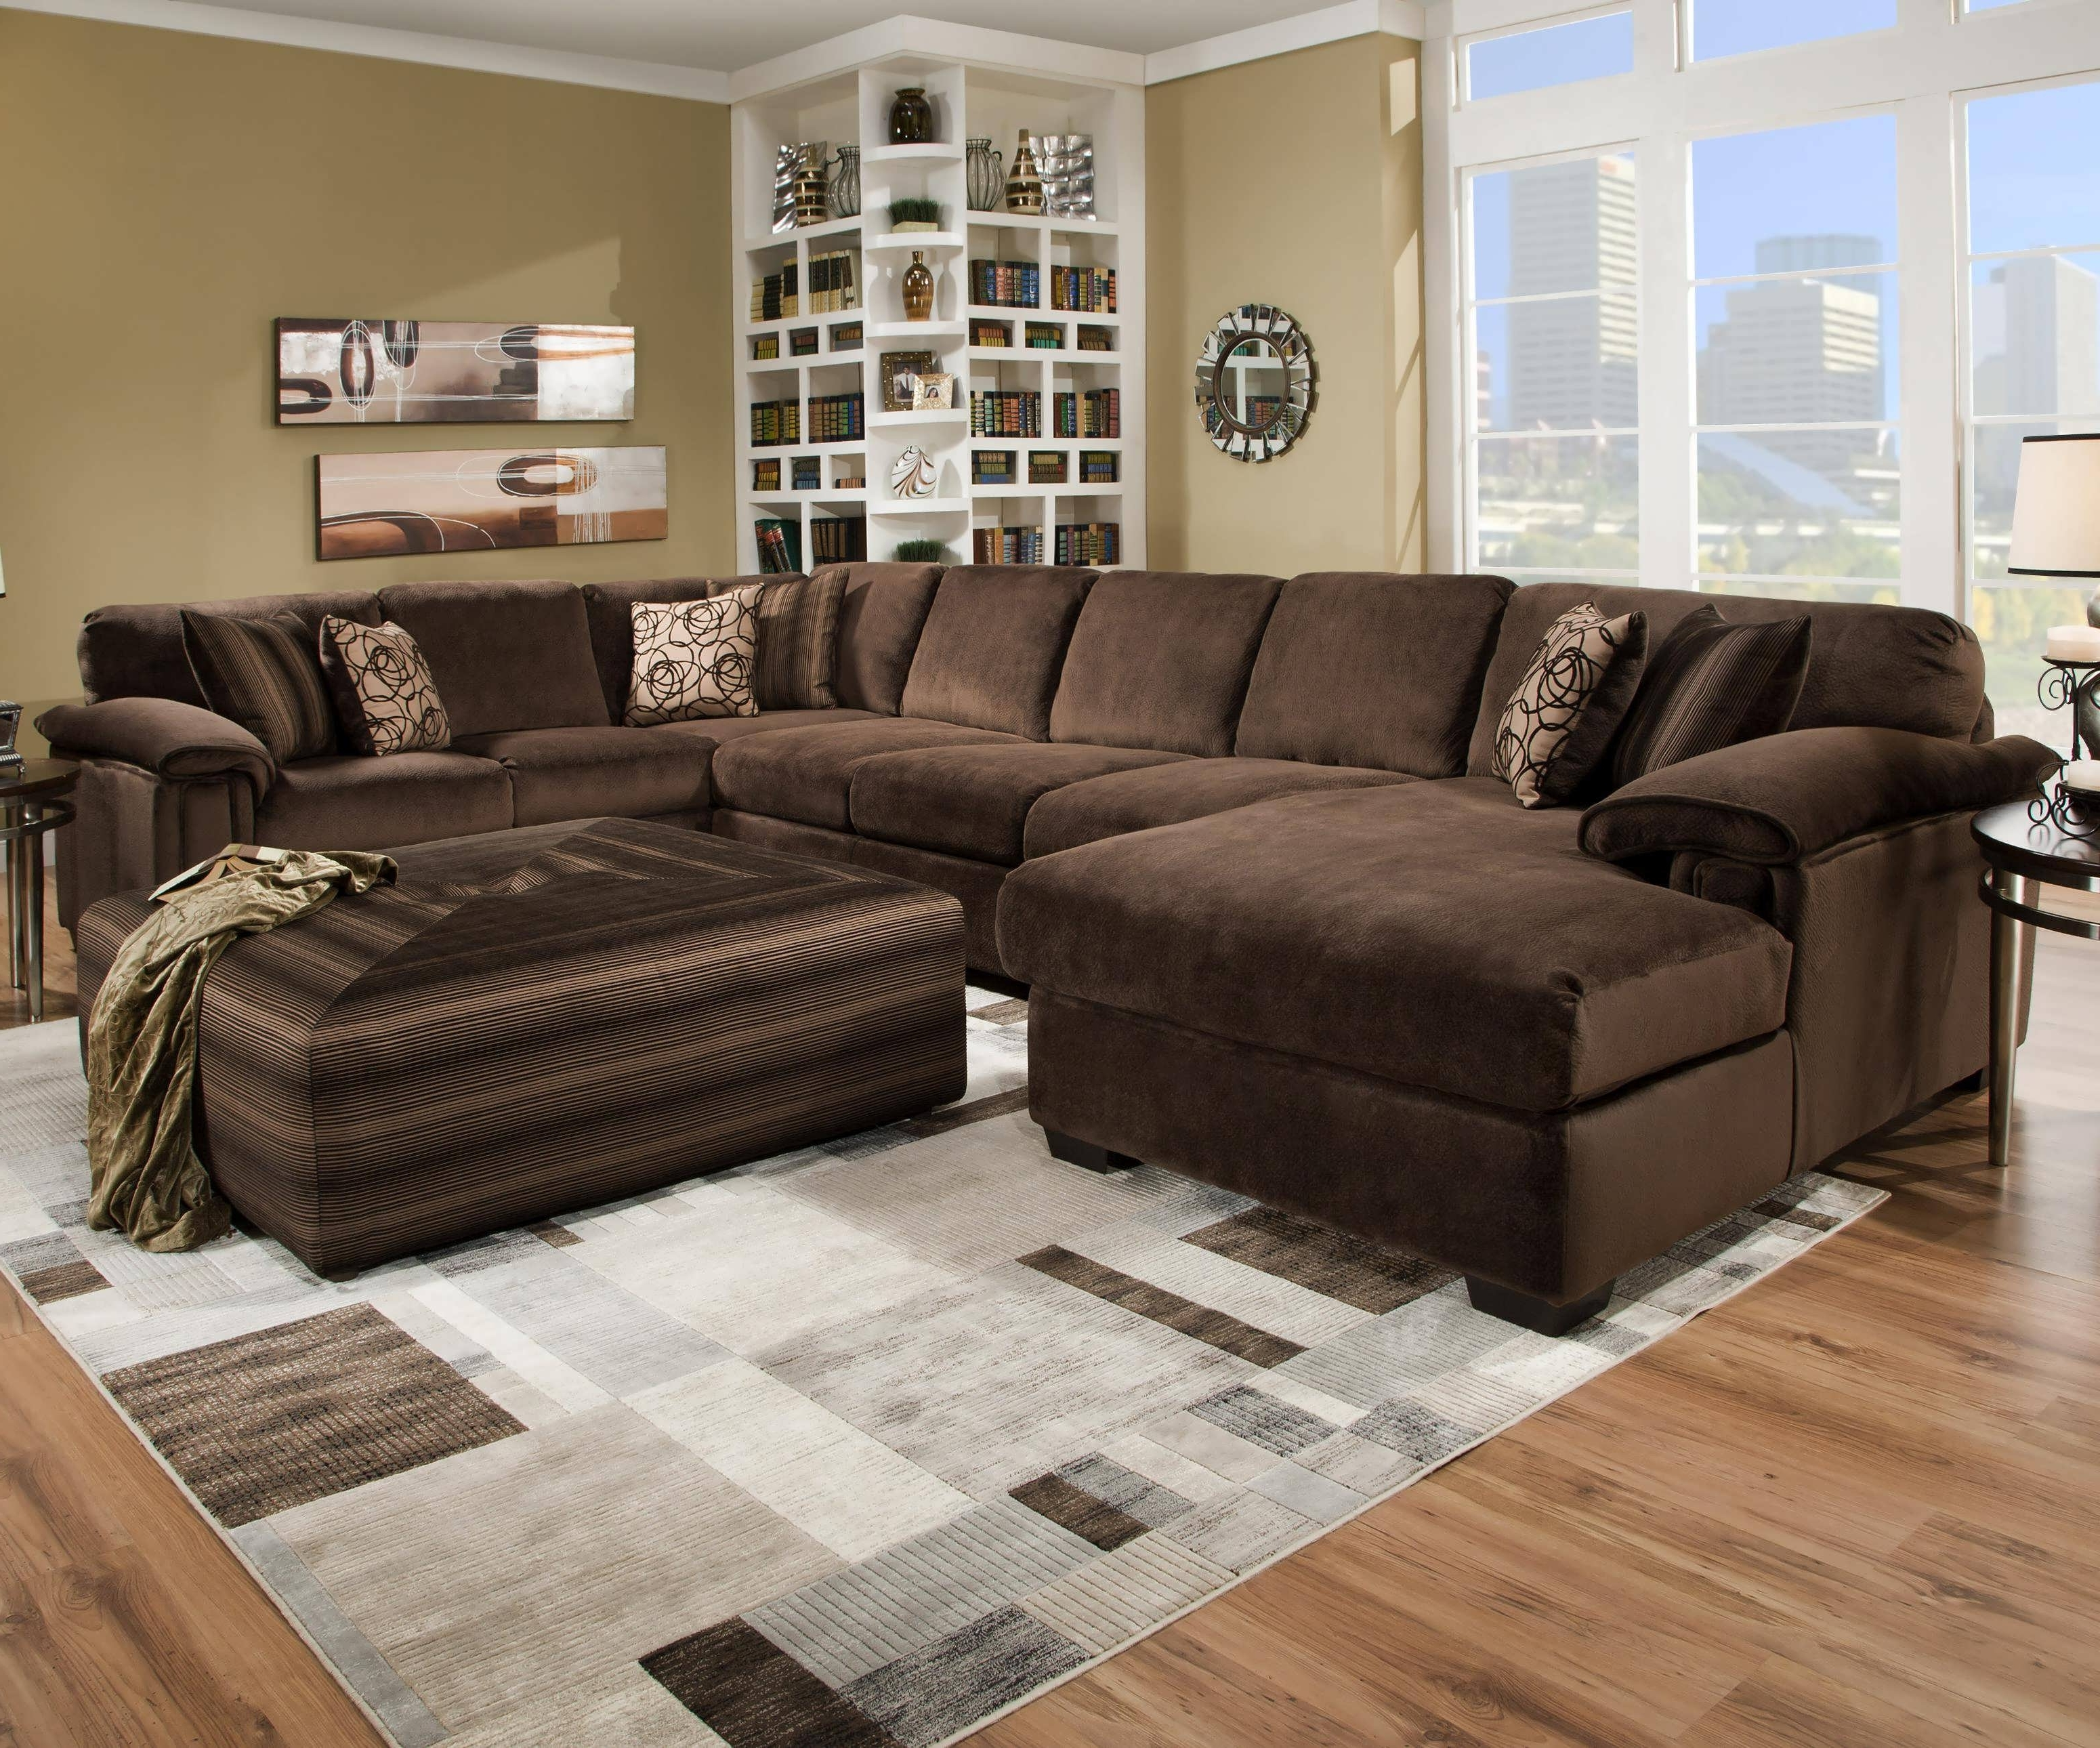 Well Known Deep Sectional Sofas With Chaise Within Sofa : Sectional Sofa For Small Spaces Couch With Chaise Deep (View 12 of 15)